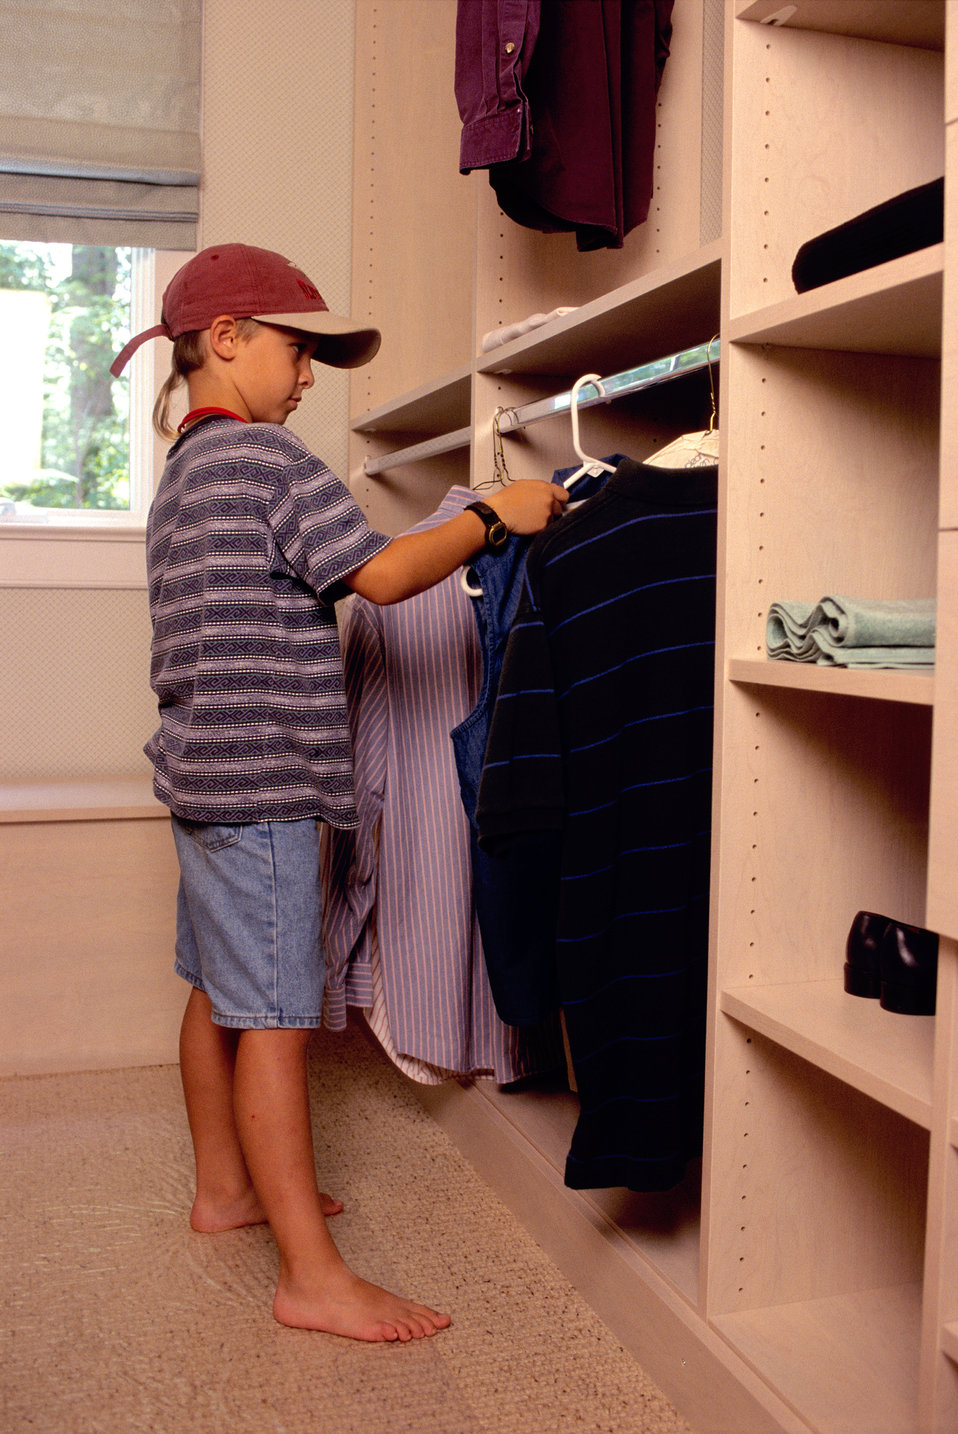 The young boy depicted in this 2000 image was shown either hanging, or removing a shirted clothes hanger, while standing on the carpeted flo